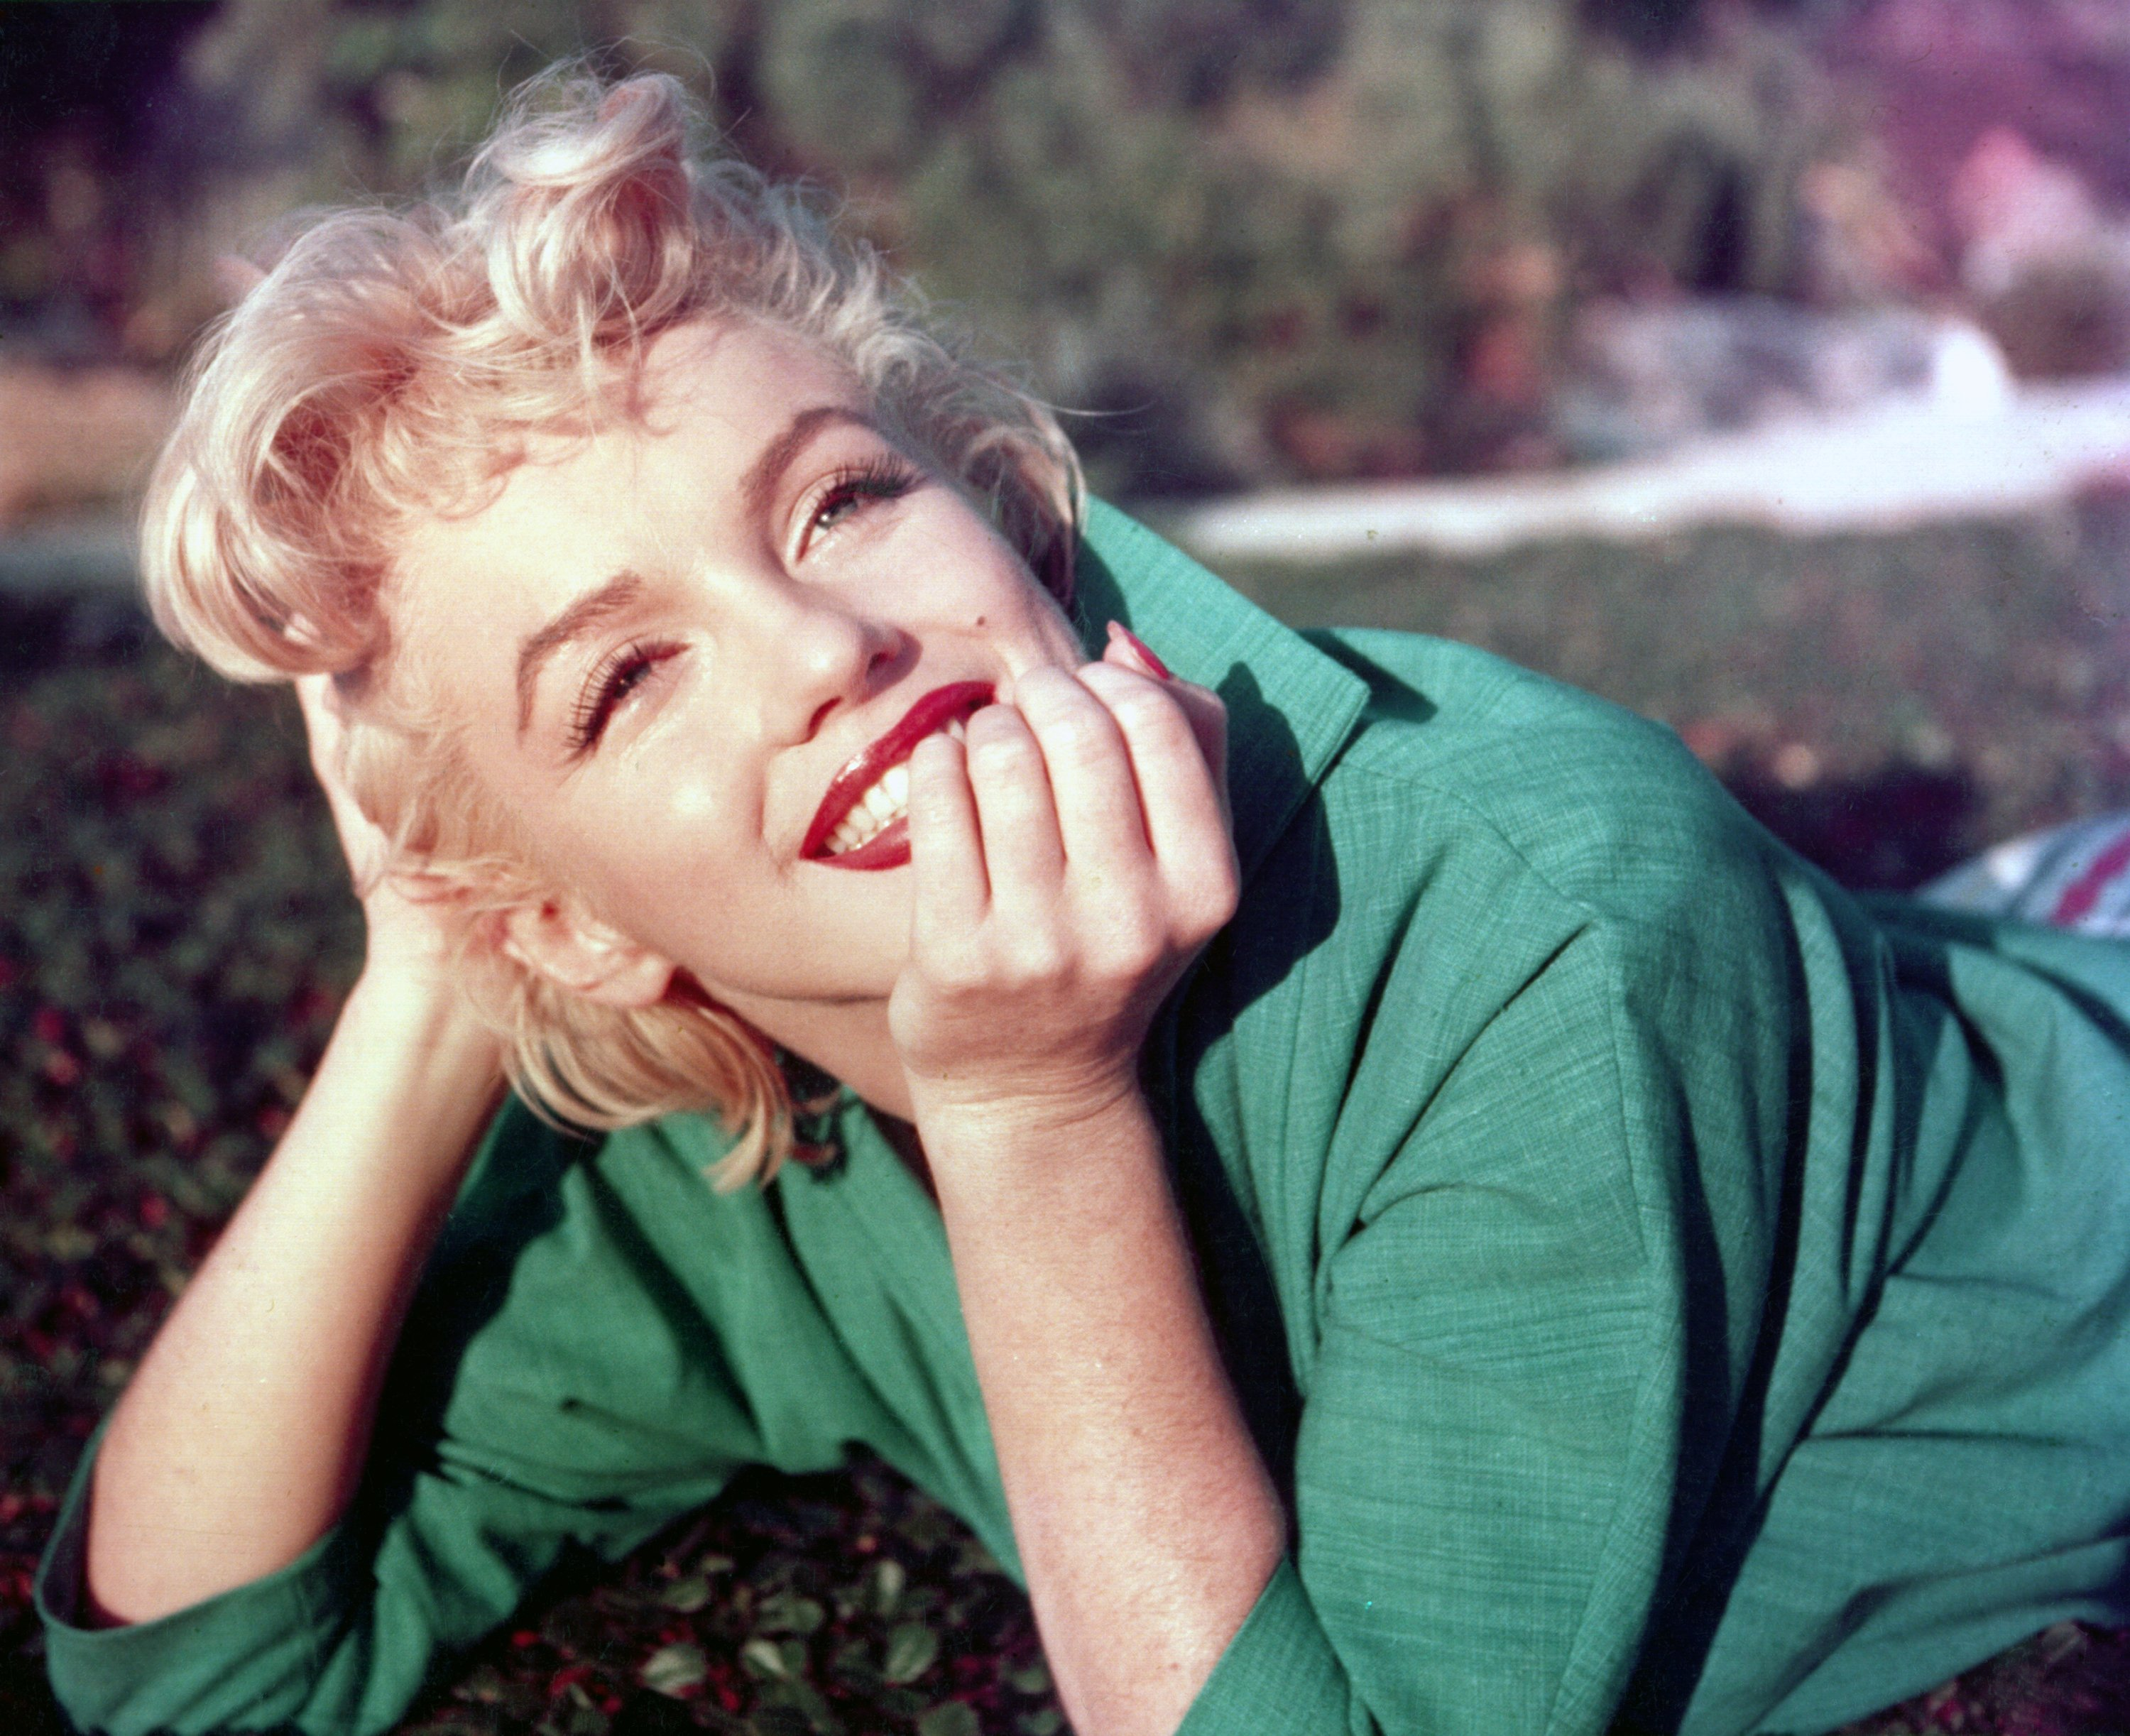 Actress Marilyn Monroe poses for a portrait laying on the grass in 1954 in Palm Springs, California. | Source: Getty Images